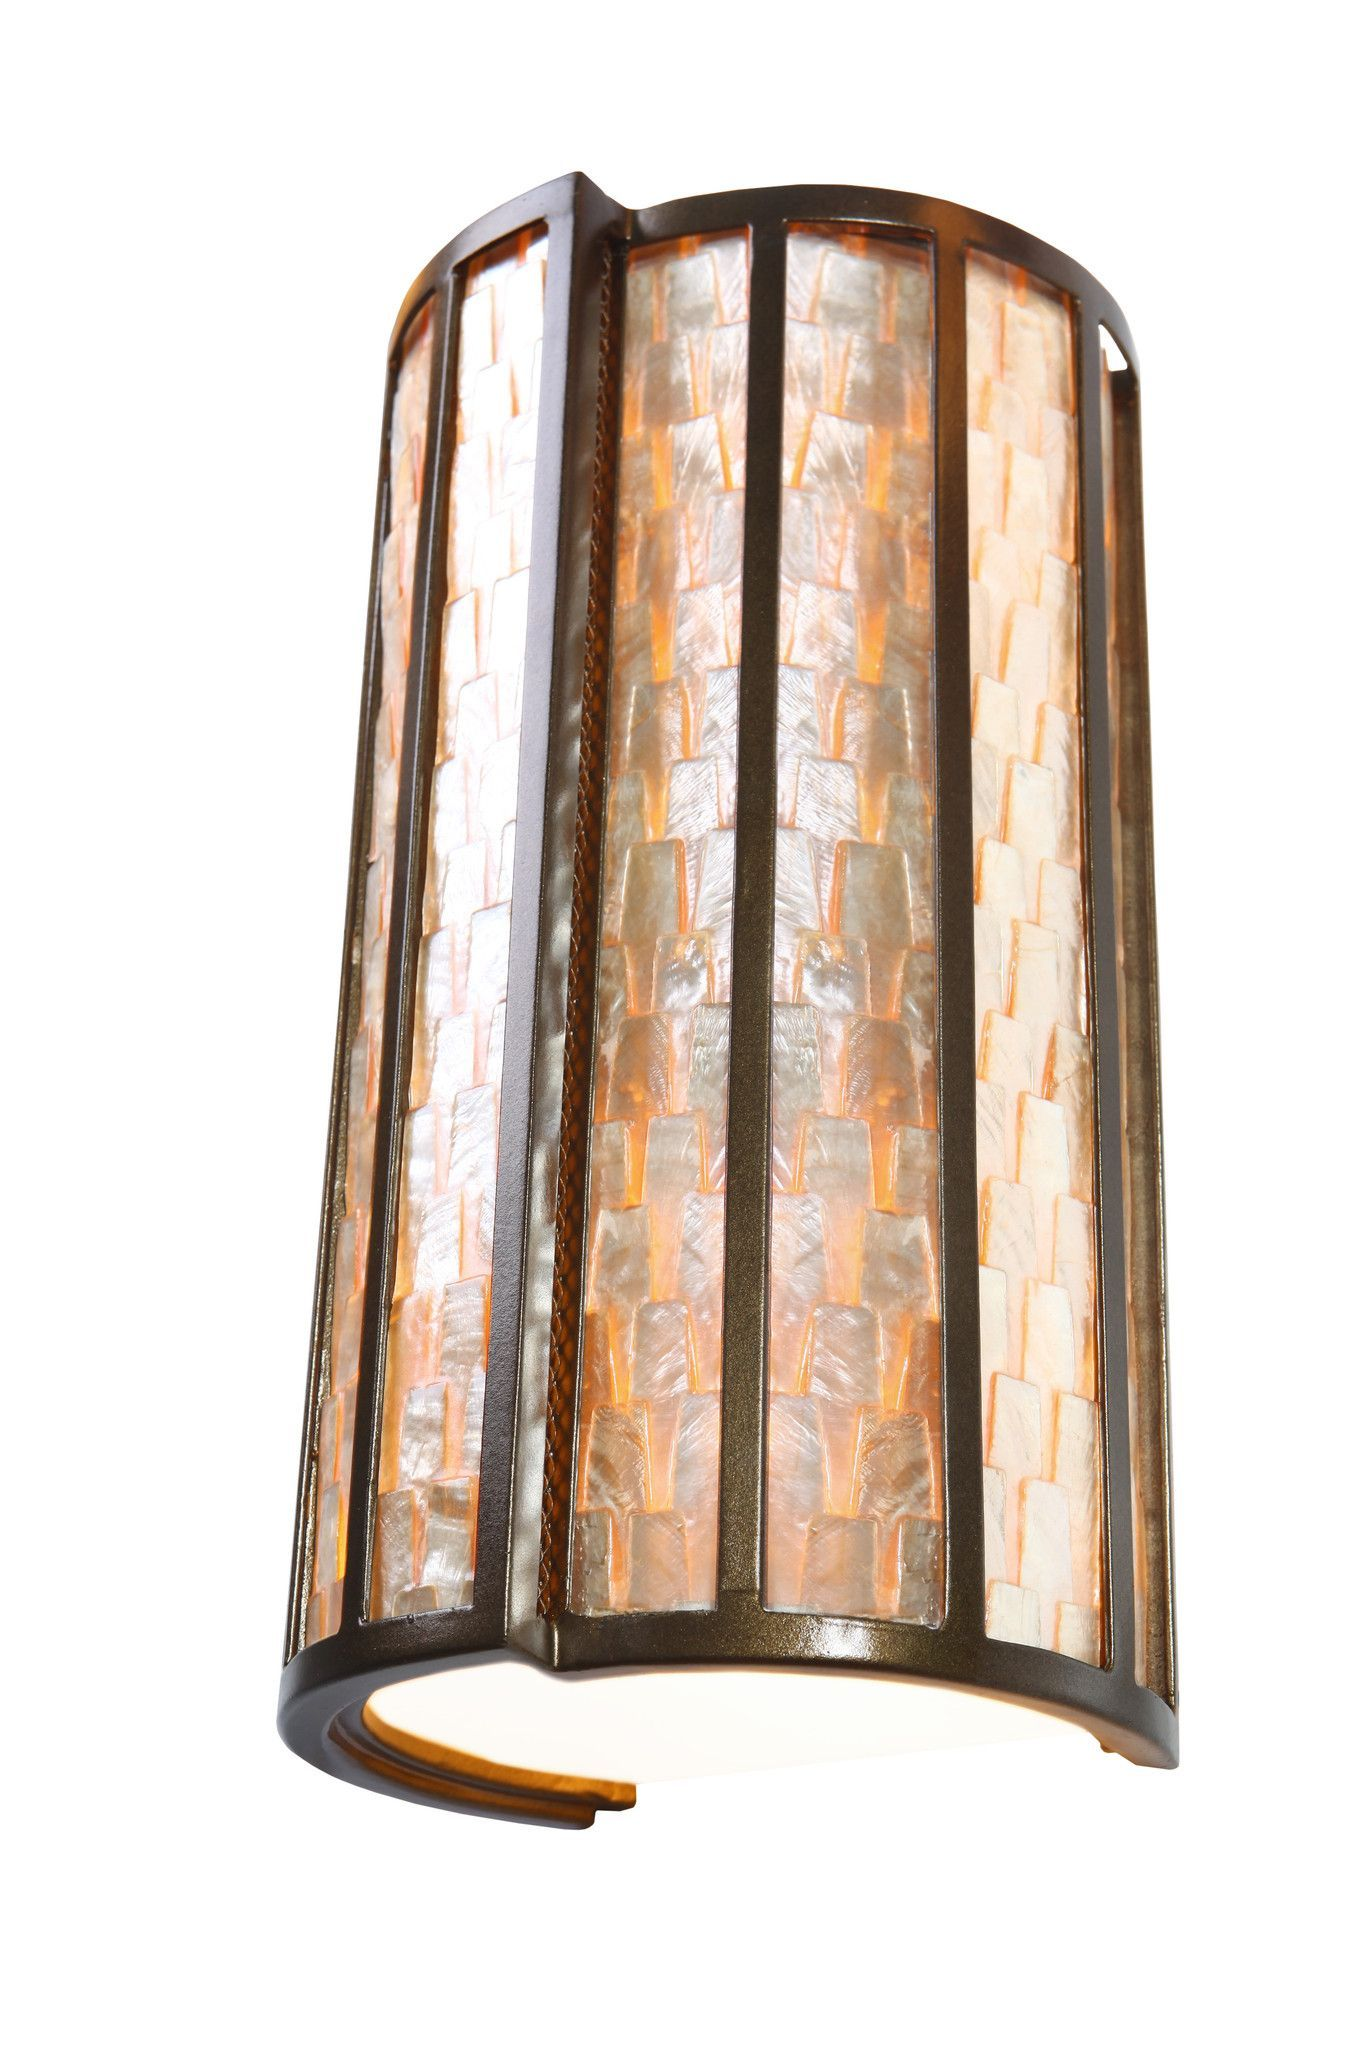 Varaluz shell affinity wall light airplane window wall sconces